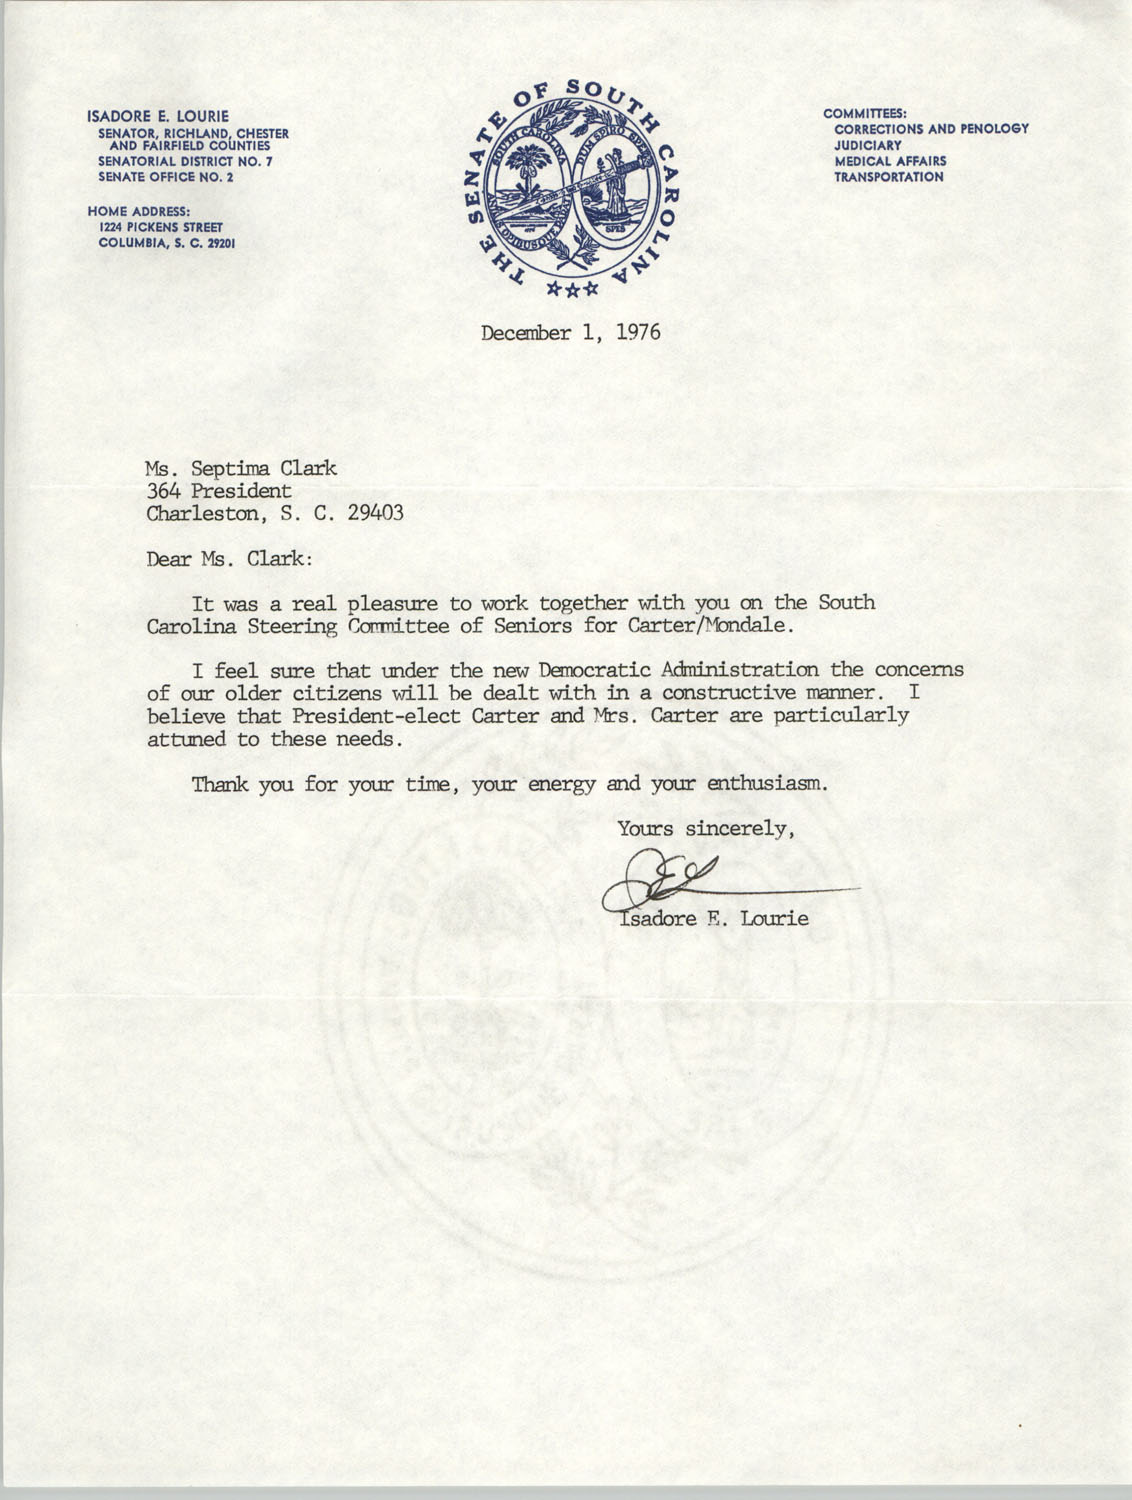 Letter from Isadore E. Lourie to Septima P. Clark, December 1, 1976